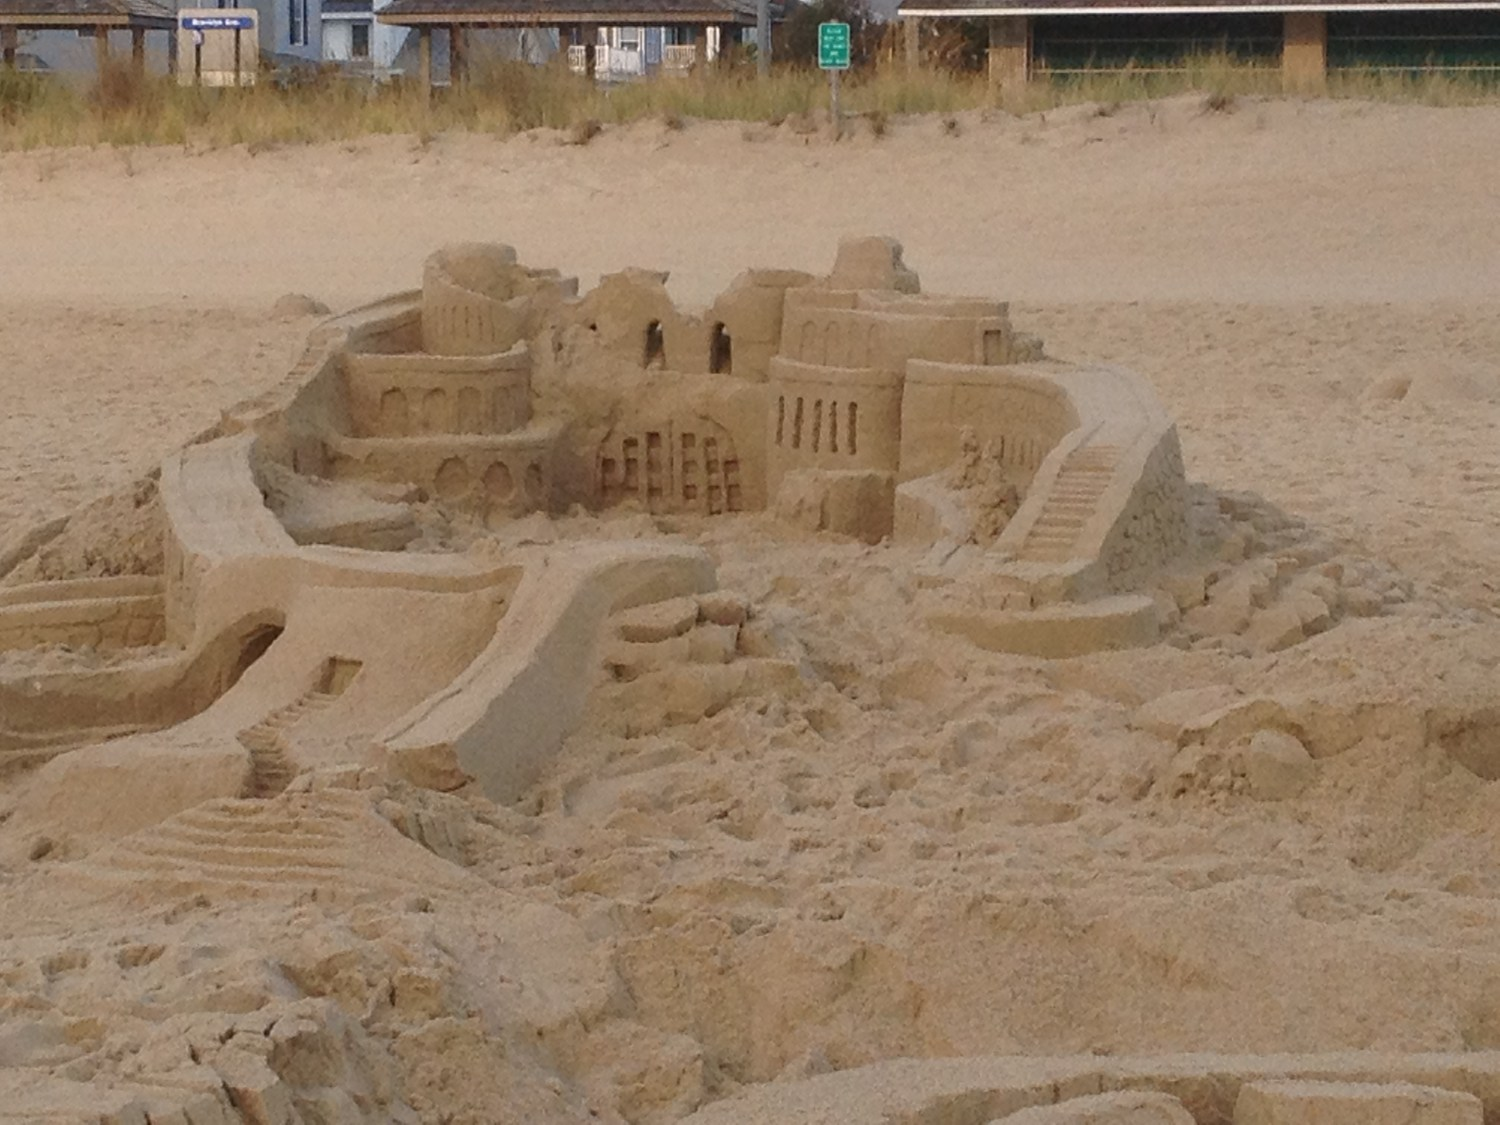 Sandcastle at Rehoboth Beach